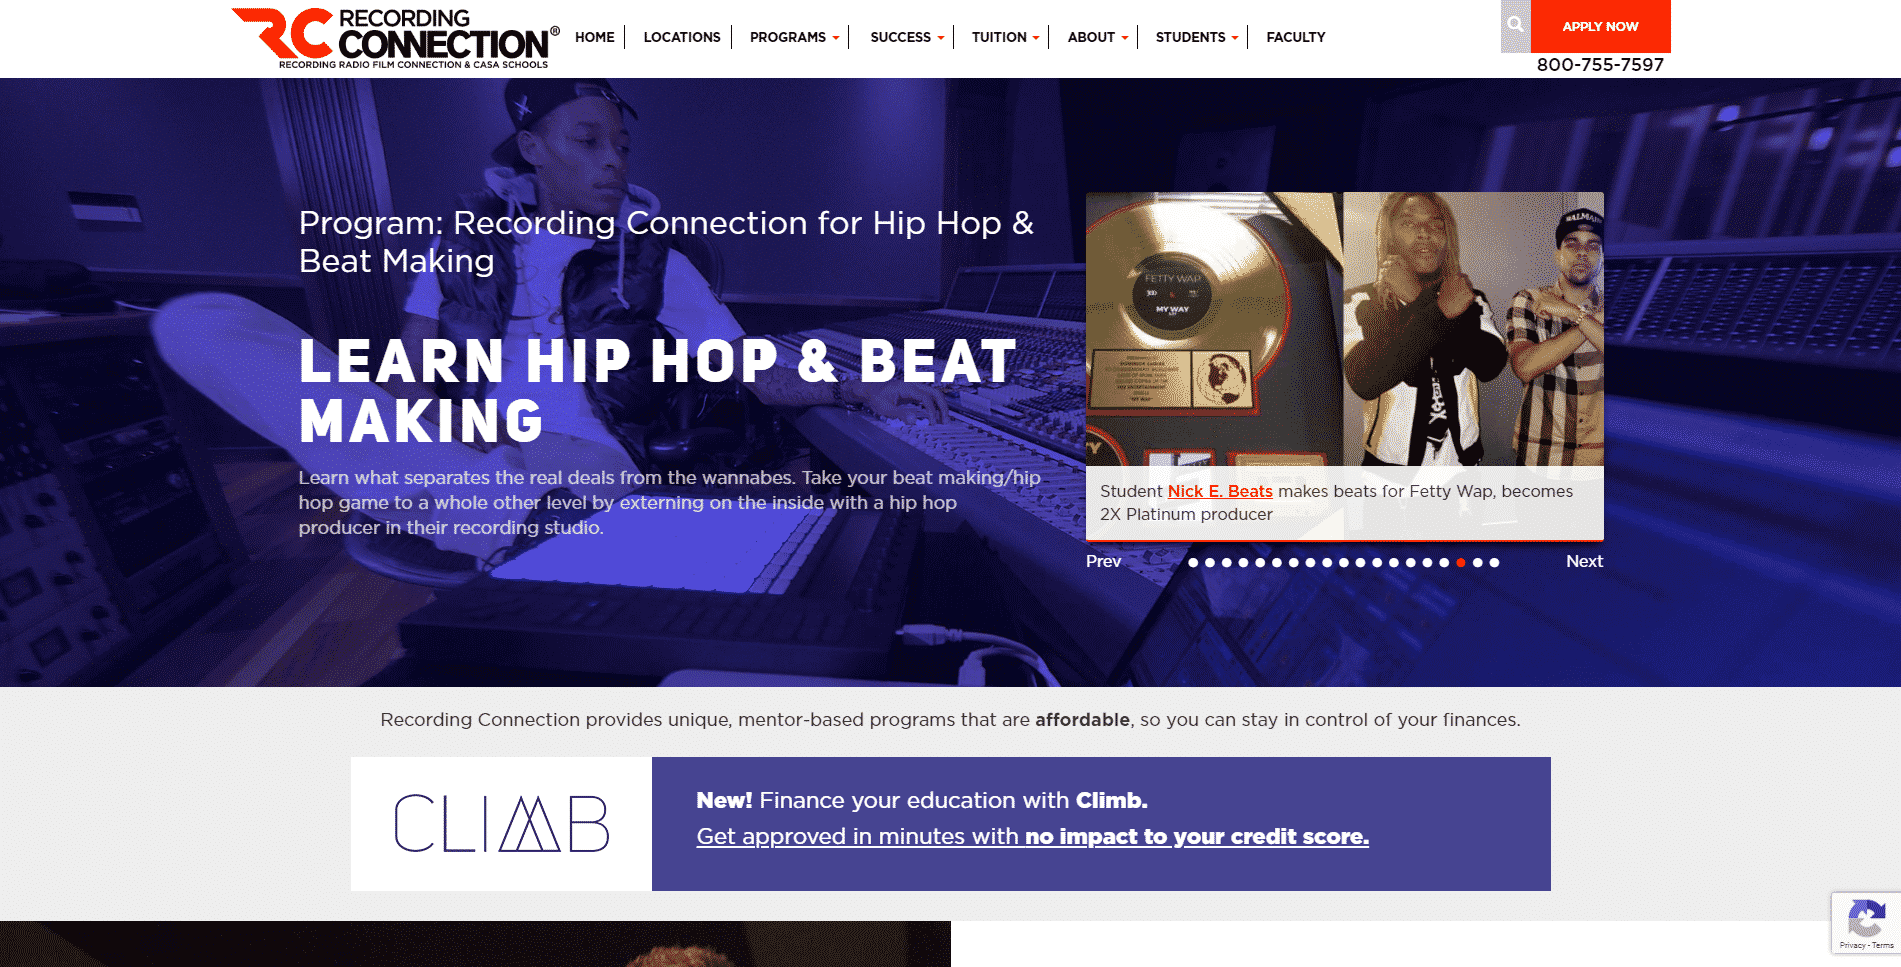 Recording connection – Online Music Production and Beatmaking Lessons